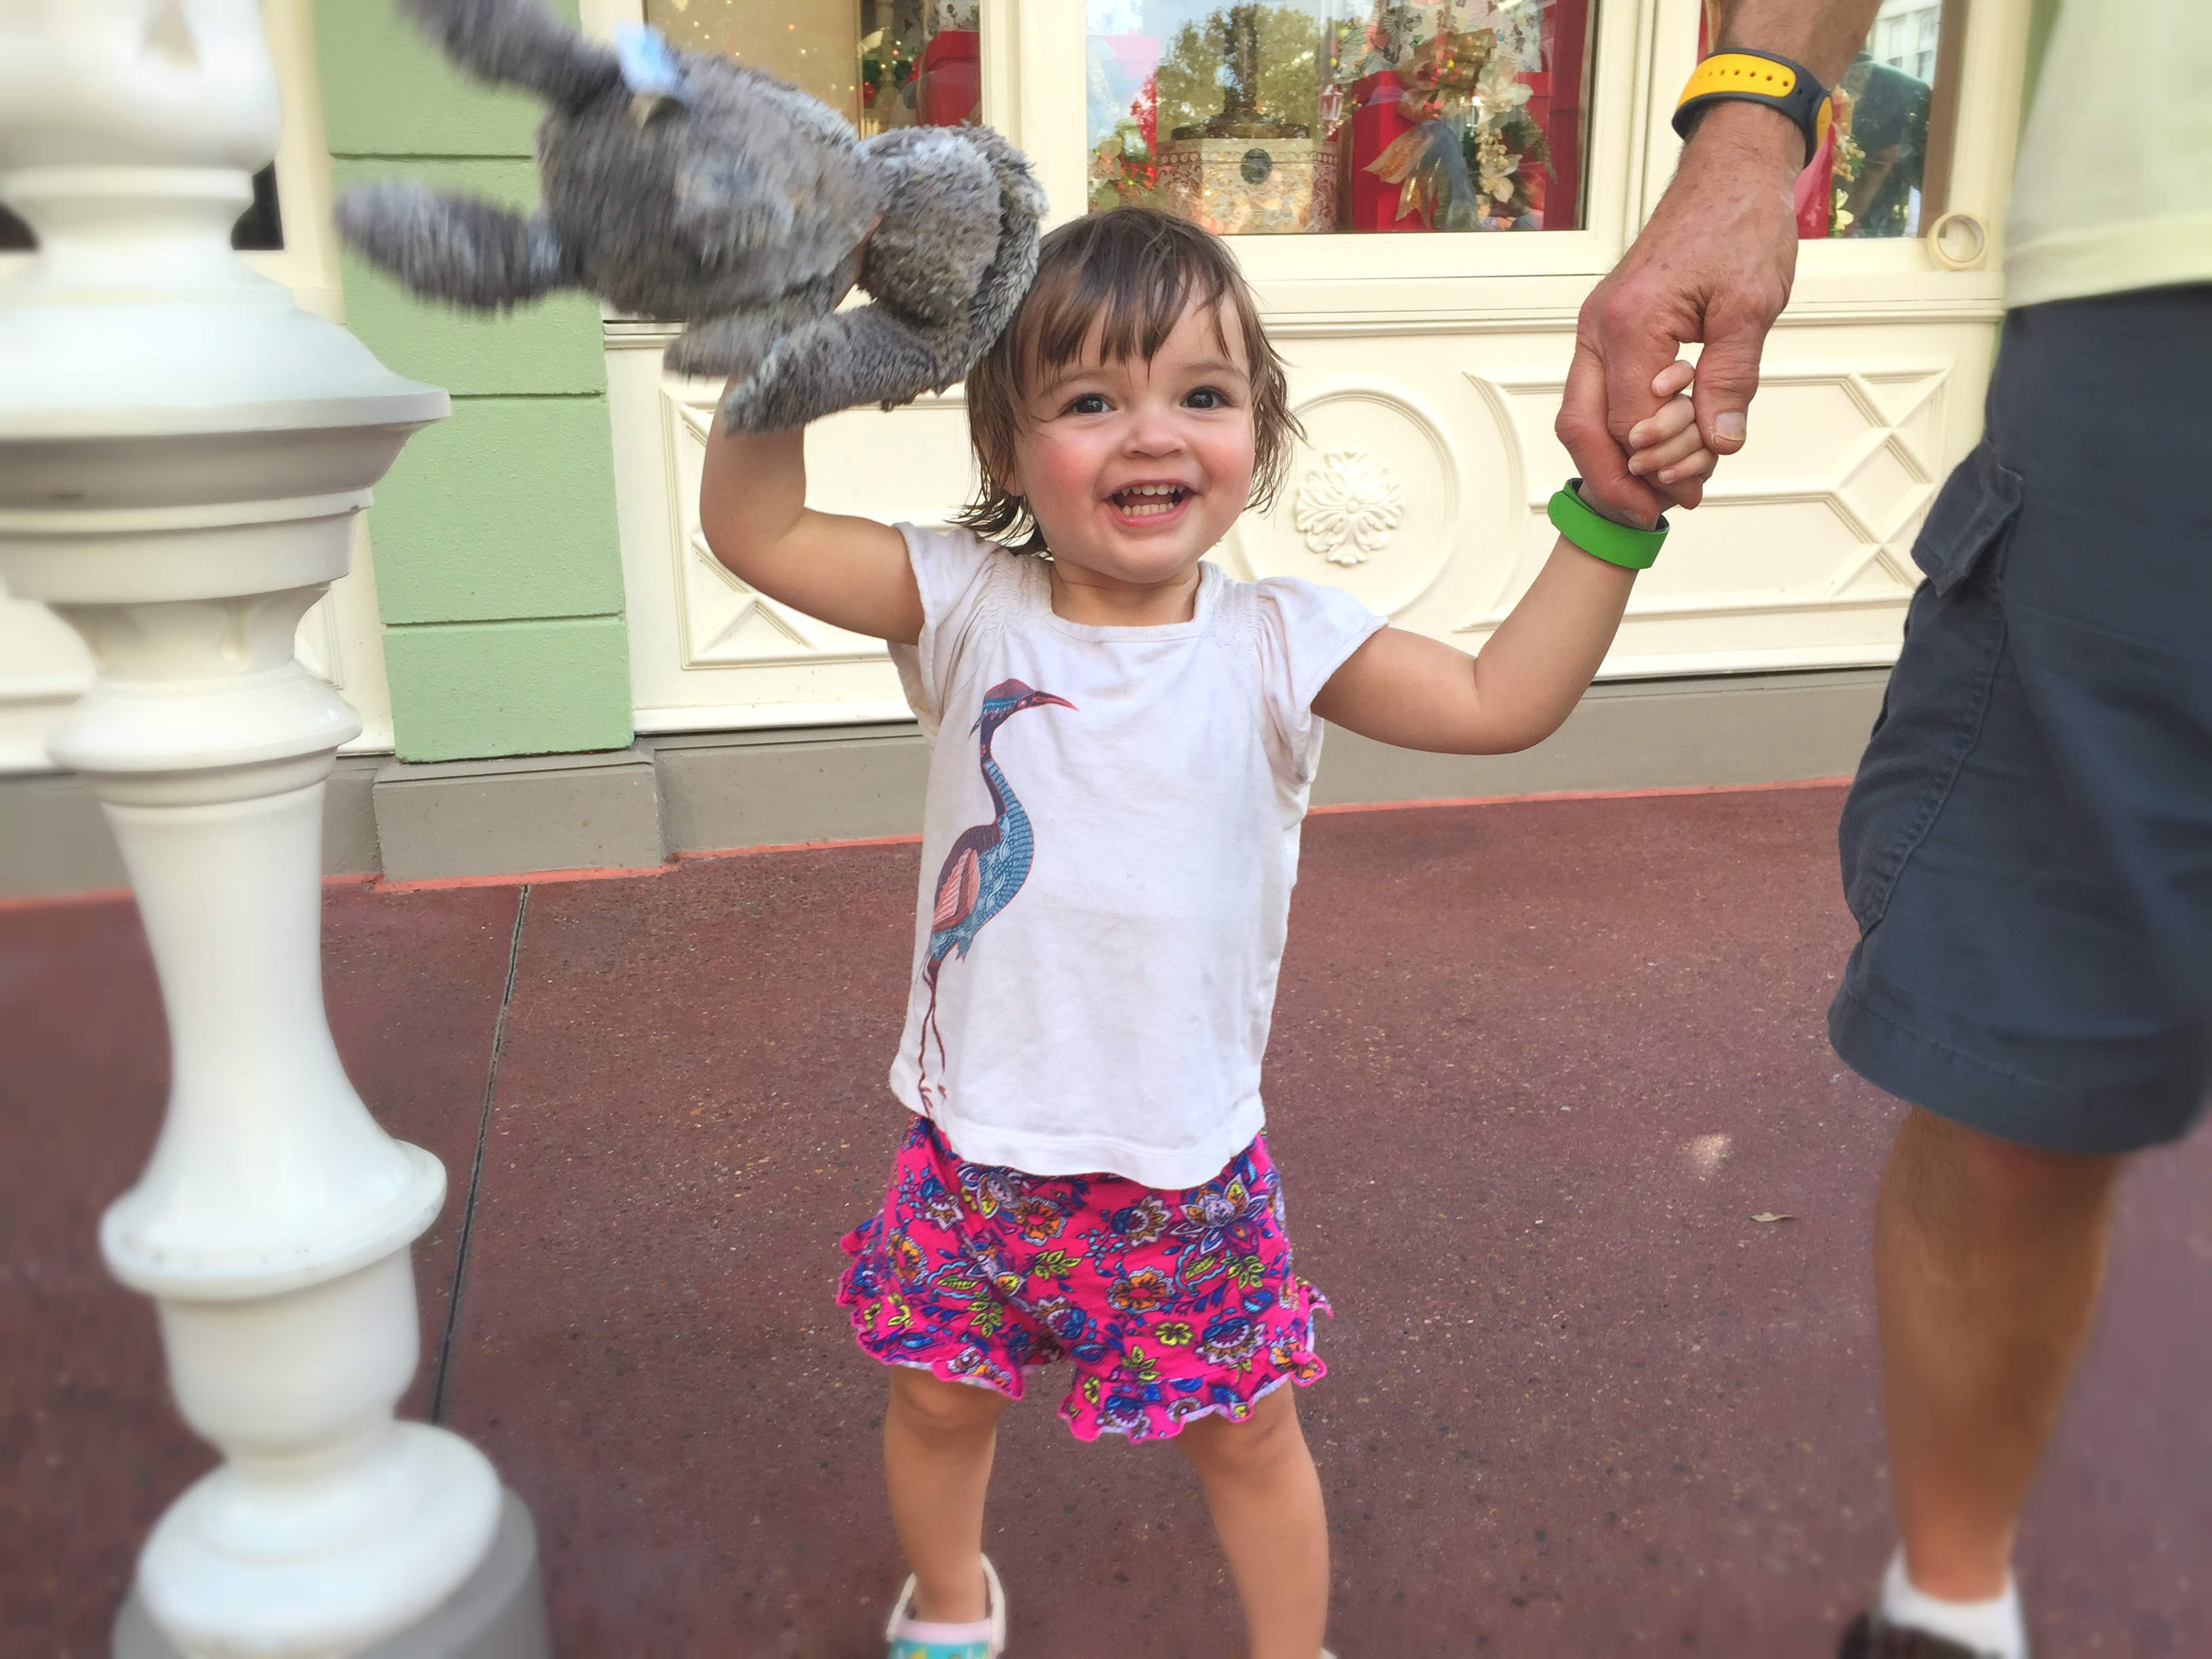 Toddler at Disney World